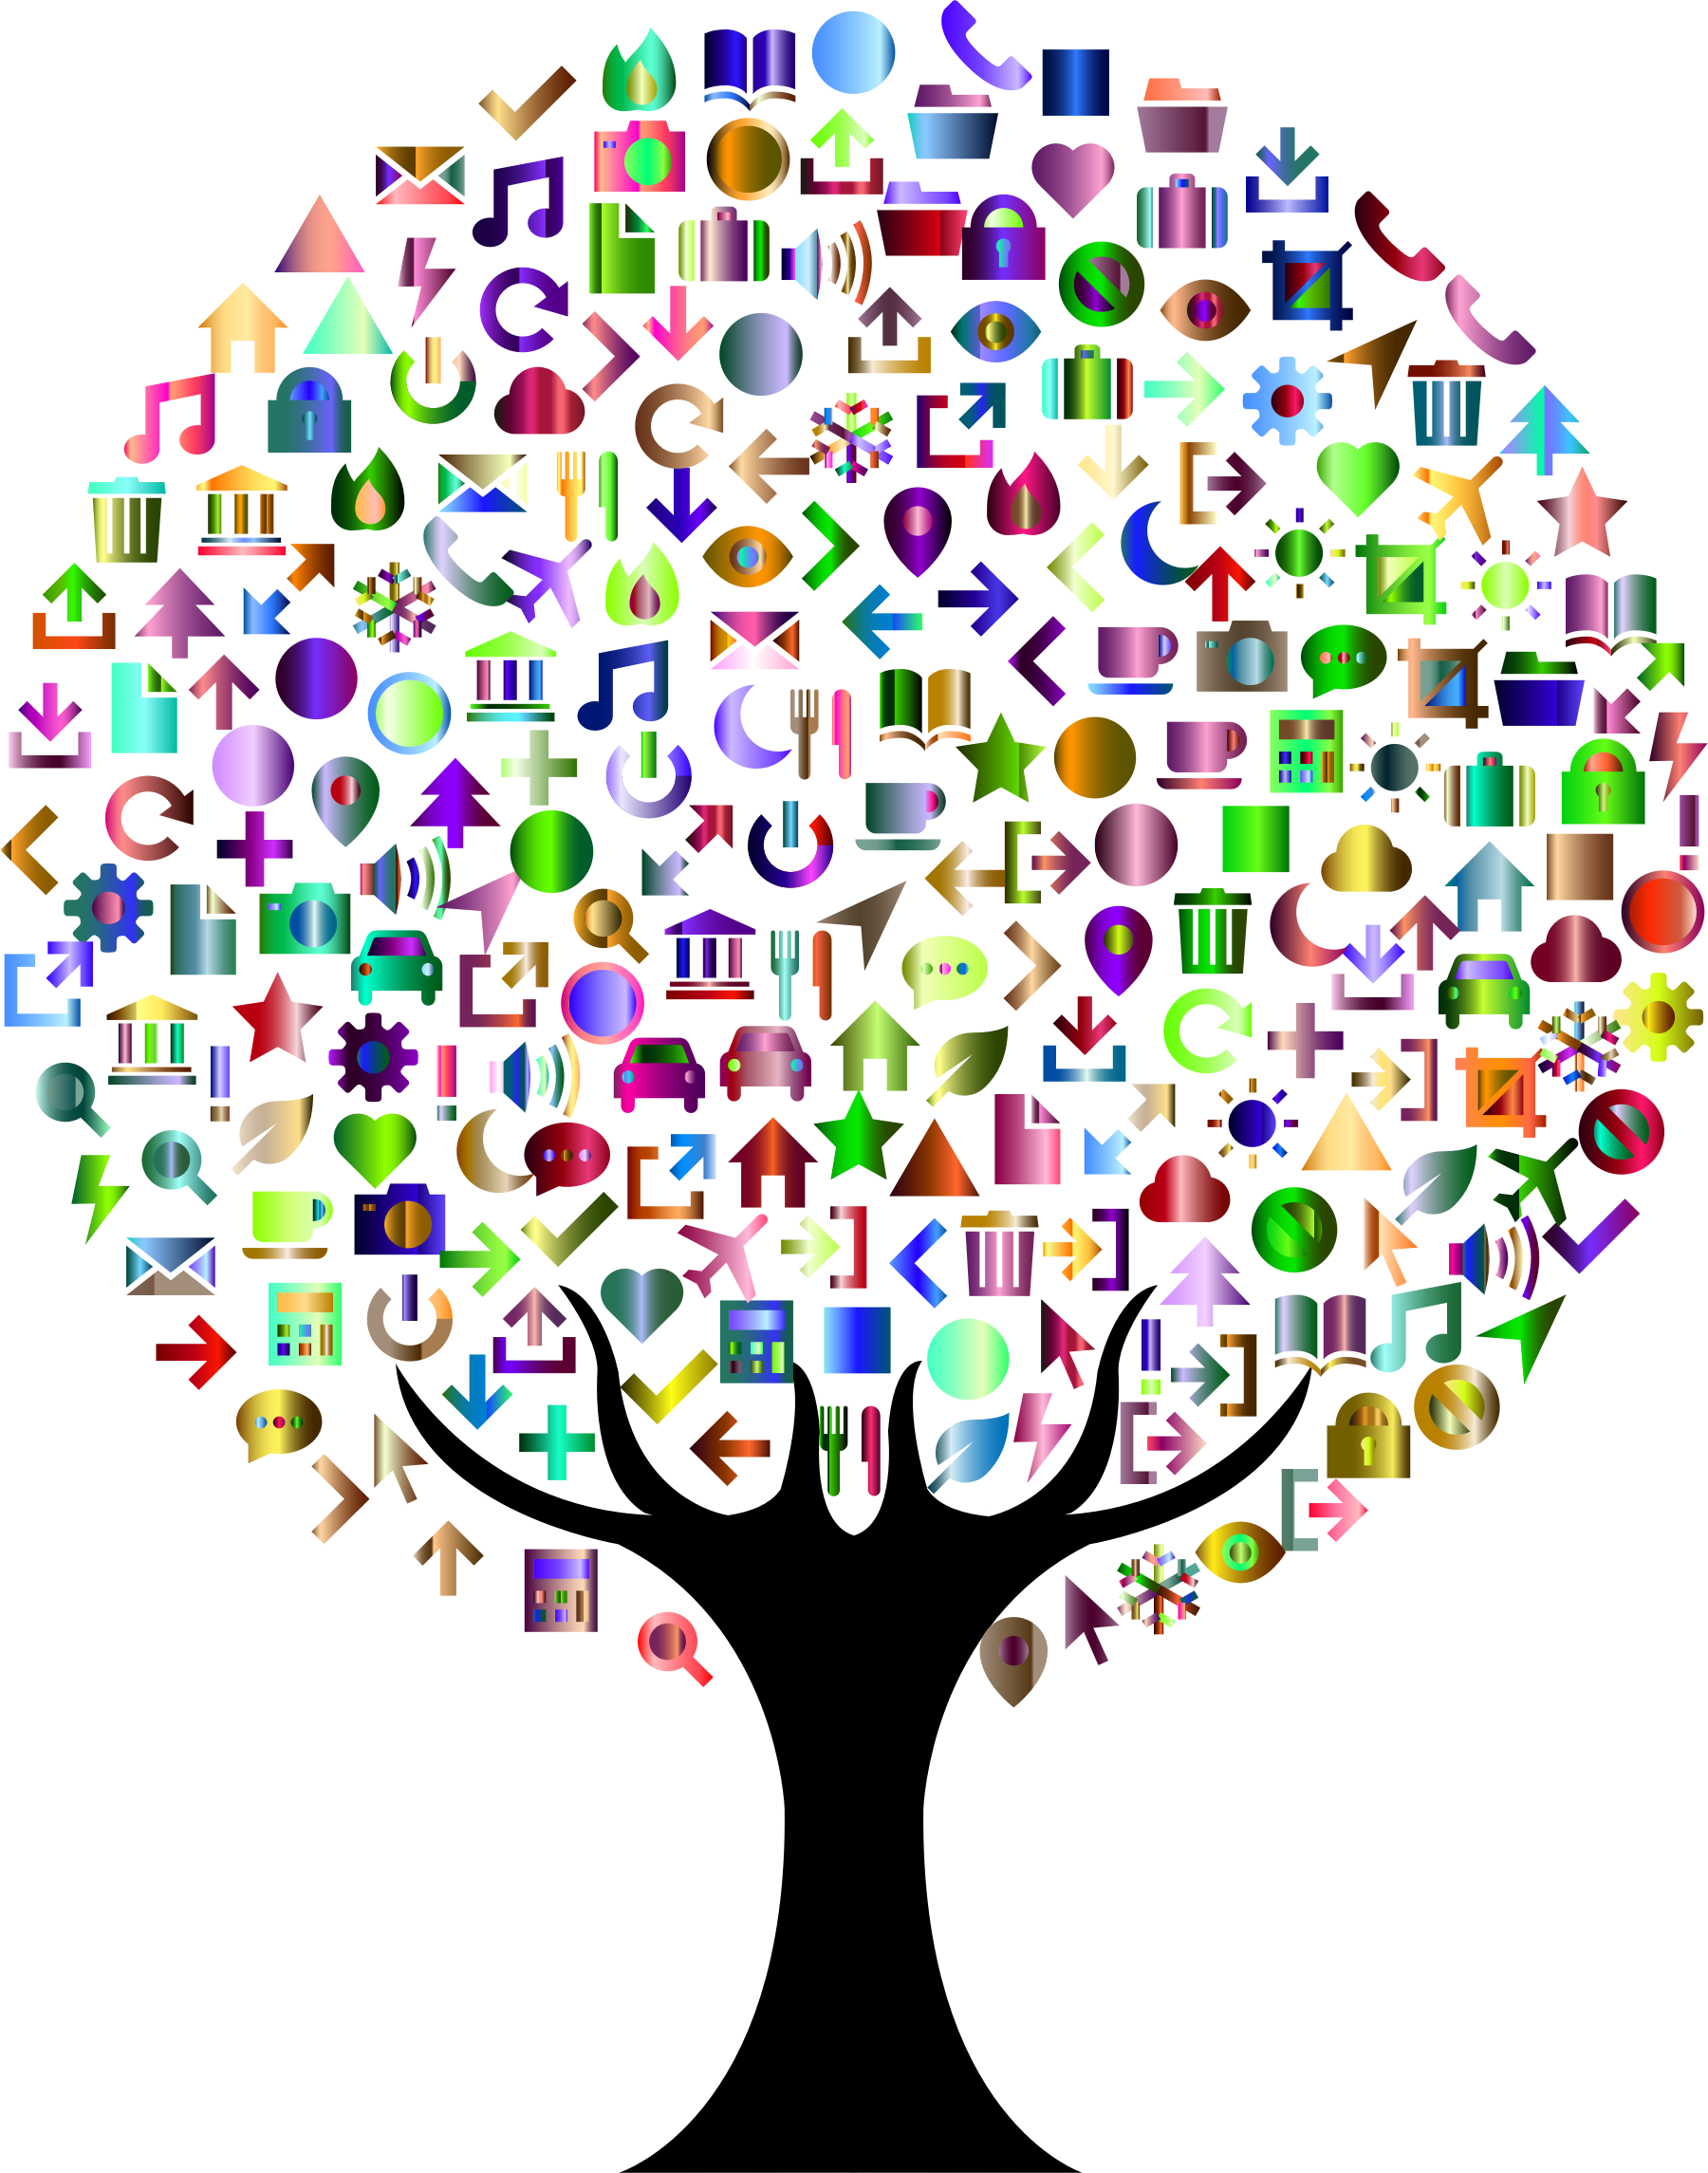 Dreaming clipart abstract. Icons tree prismatic big